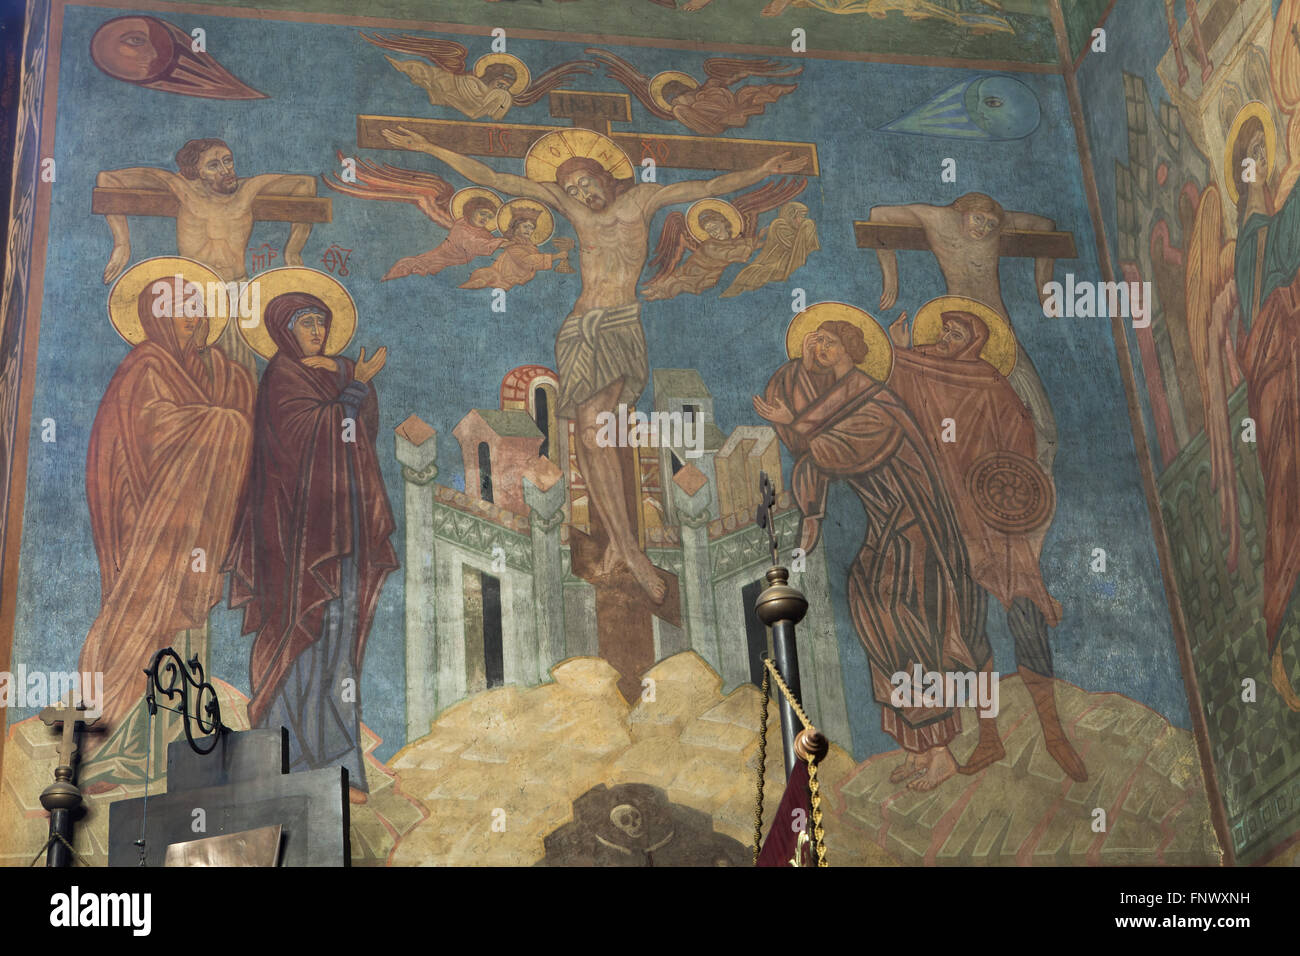 The Crucifixion. Mural painting by Russian icon painter Ilya Shapov (1912-1989) in the Dormition Church at the Olsany Stock Photo